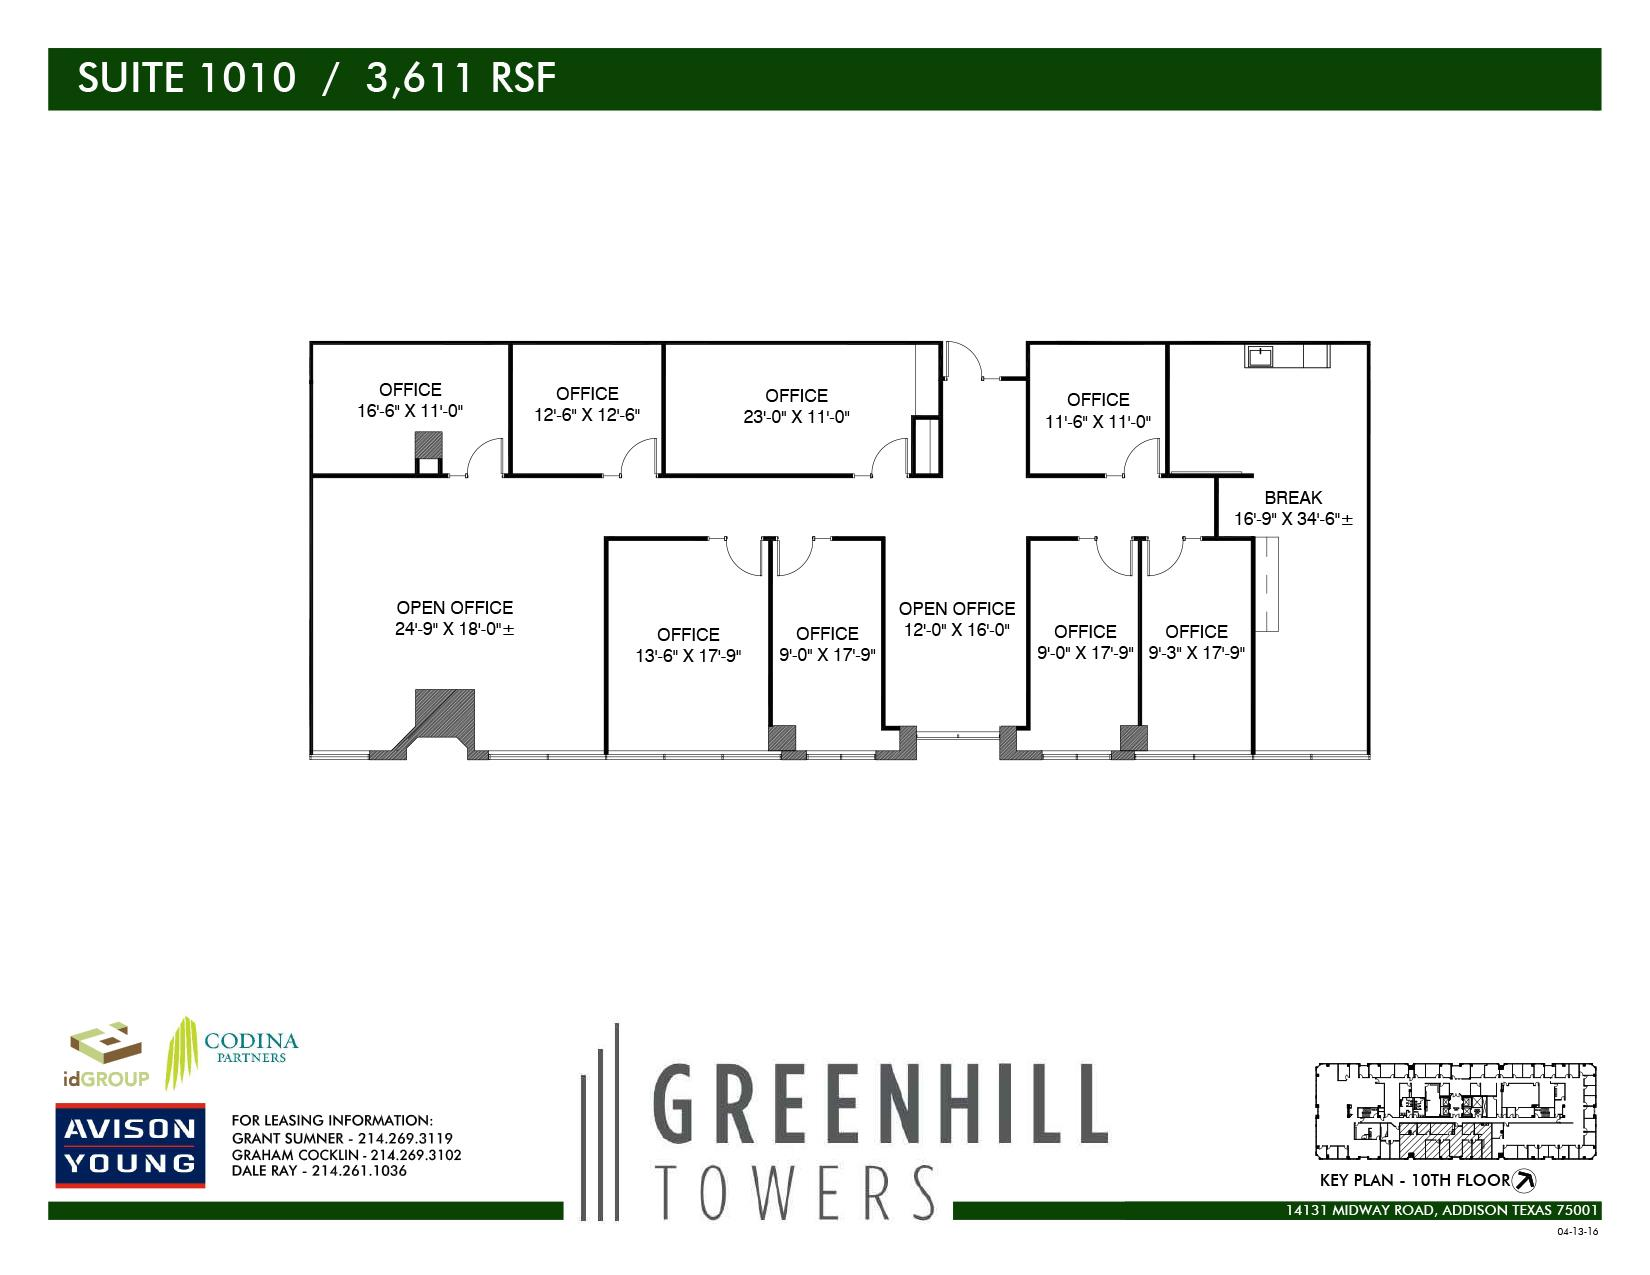 Codina Partners | Greenhill Towers - Suite 1010